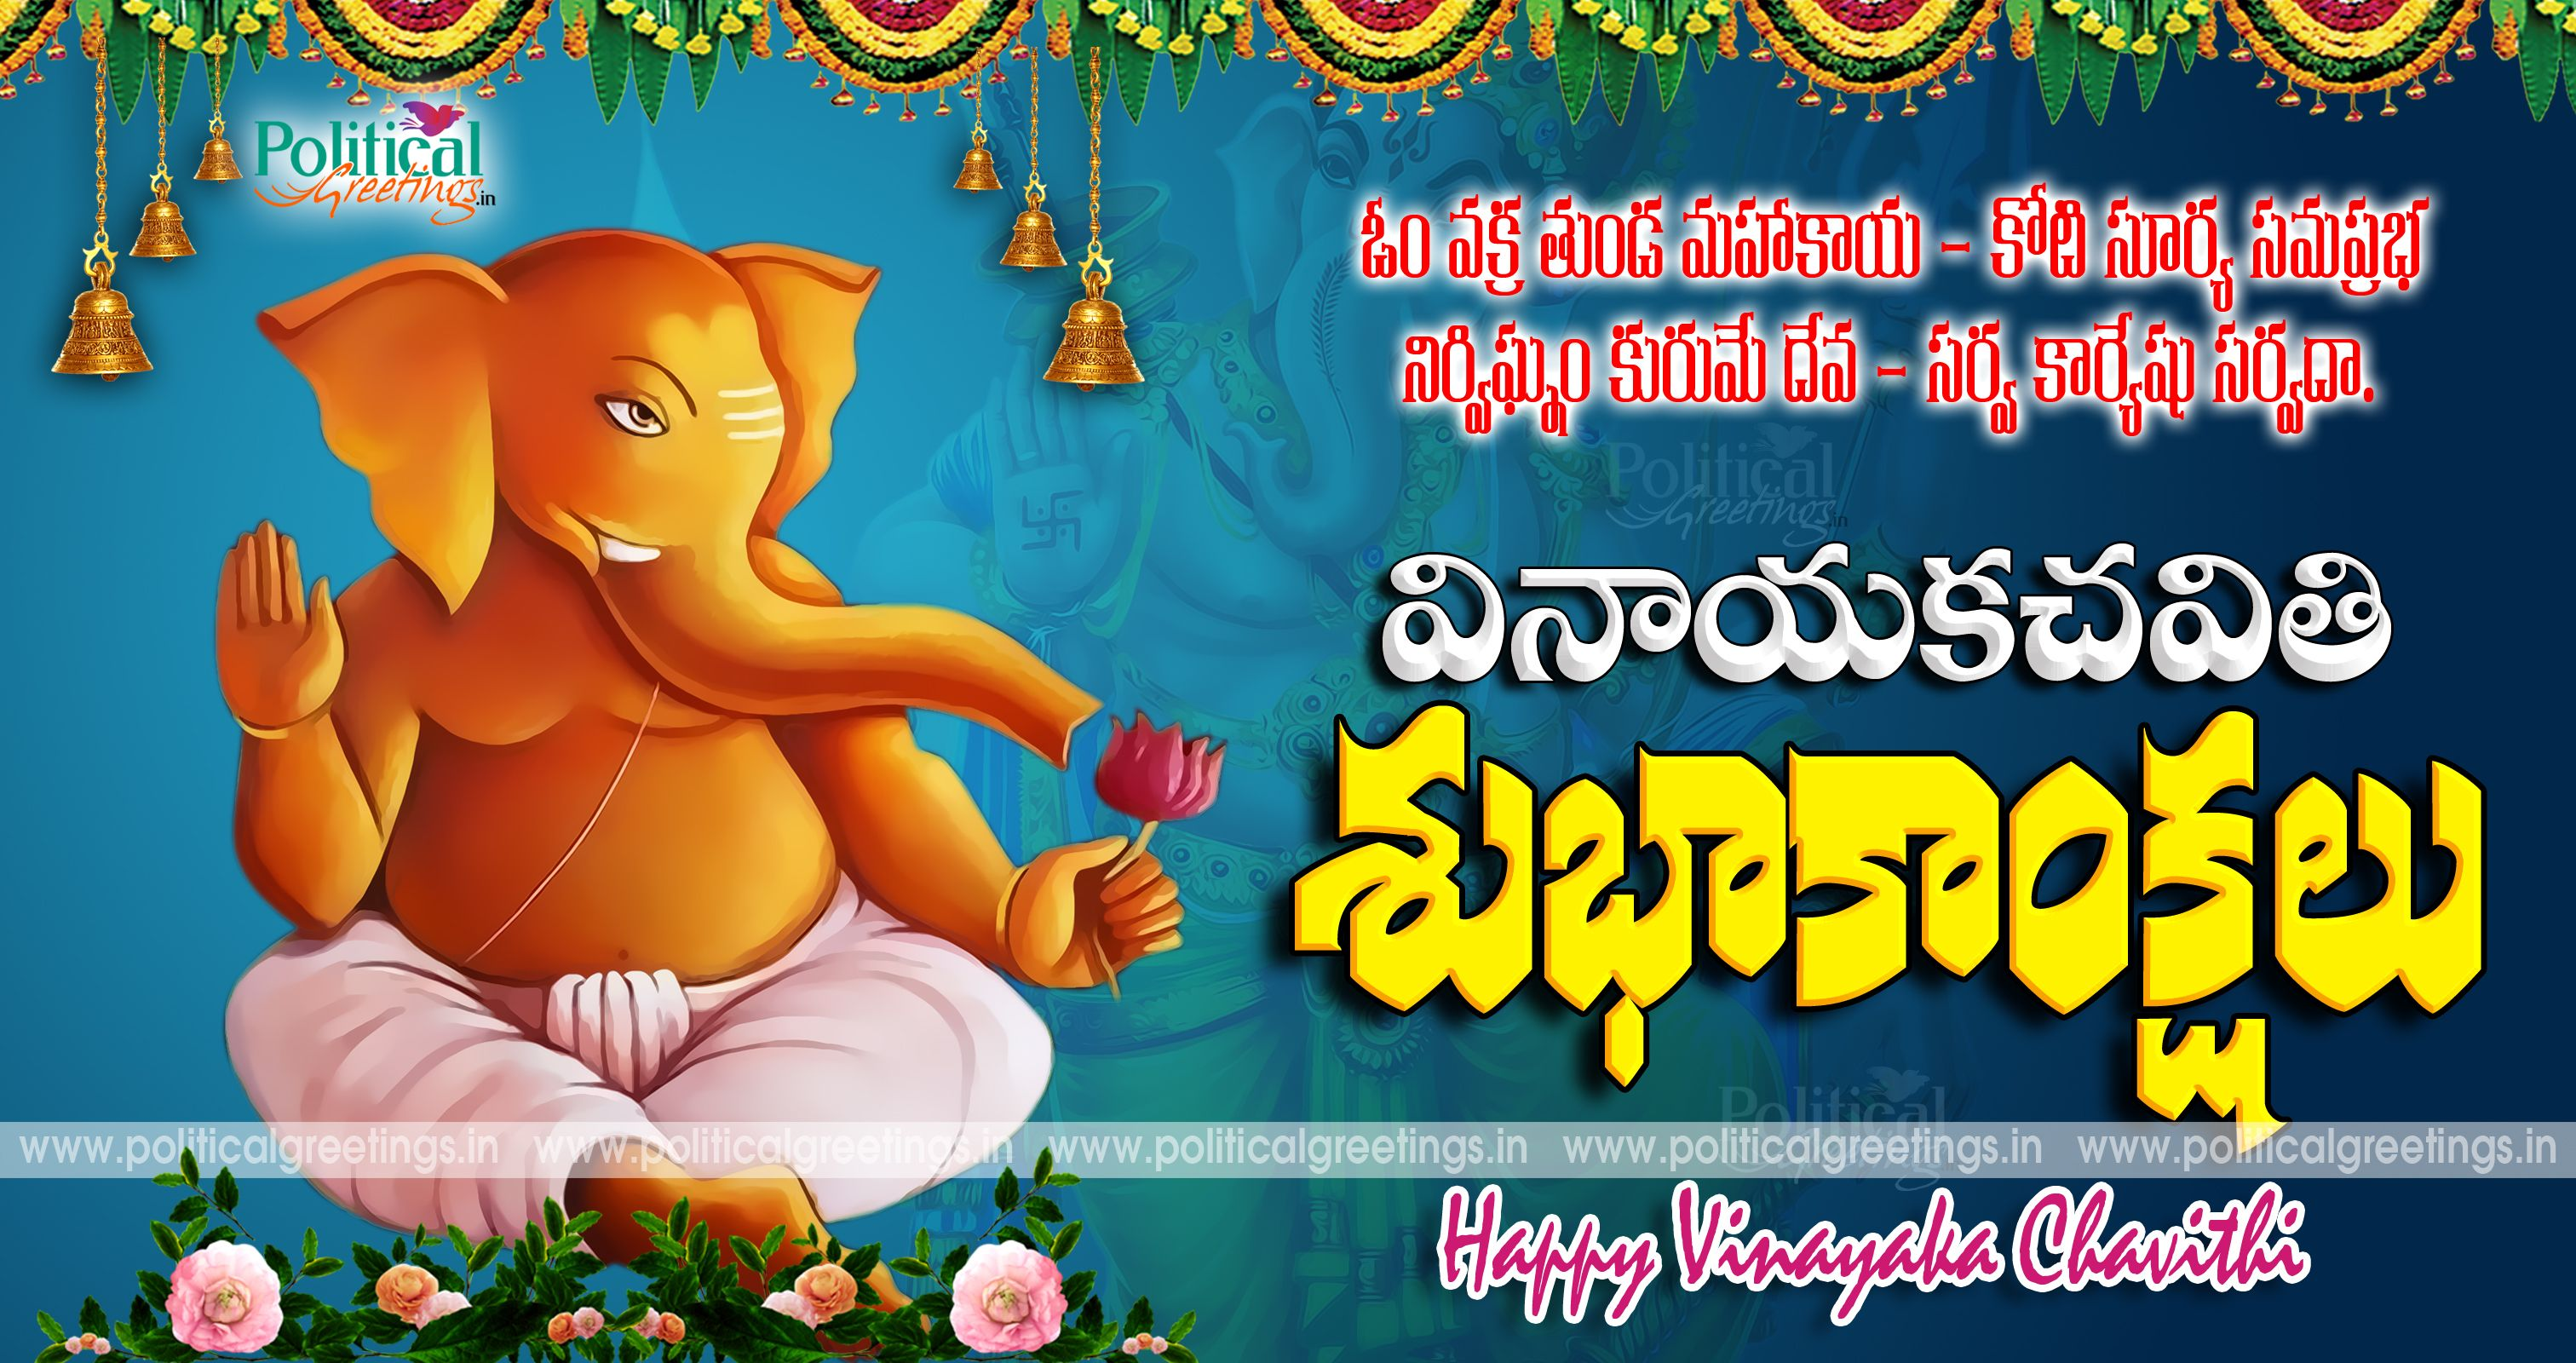 Ganesh chaturthi quotes greetings wallpapers images in telugu best ganesh chaturthi quotes greetings wallpapers images in telugu best vinayaka m4hsunfo